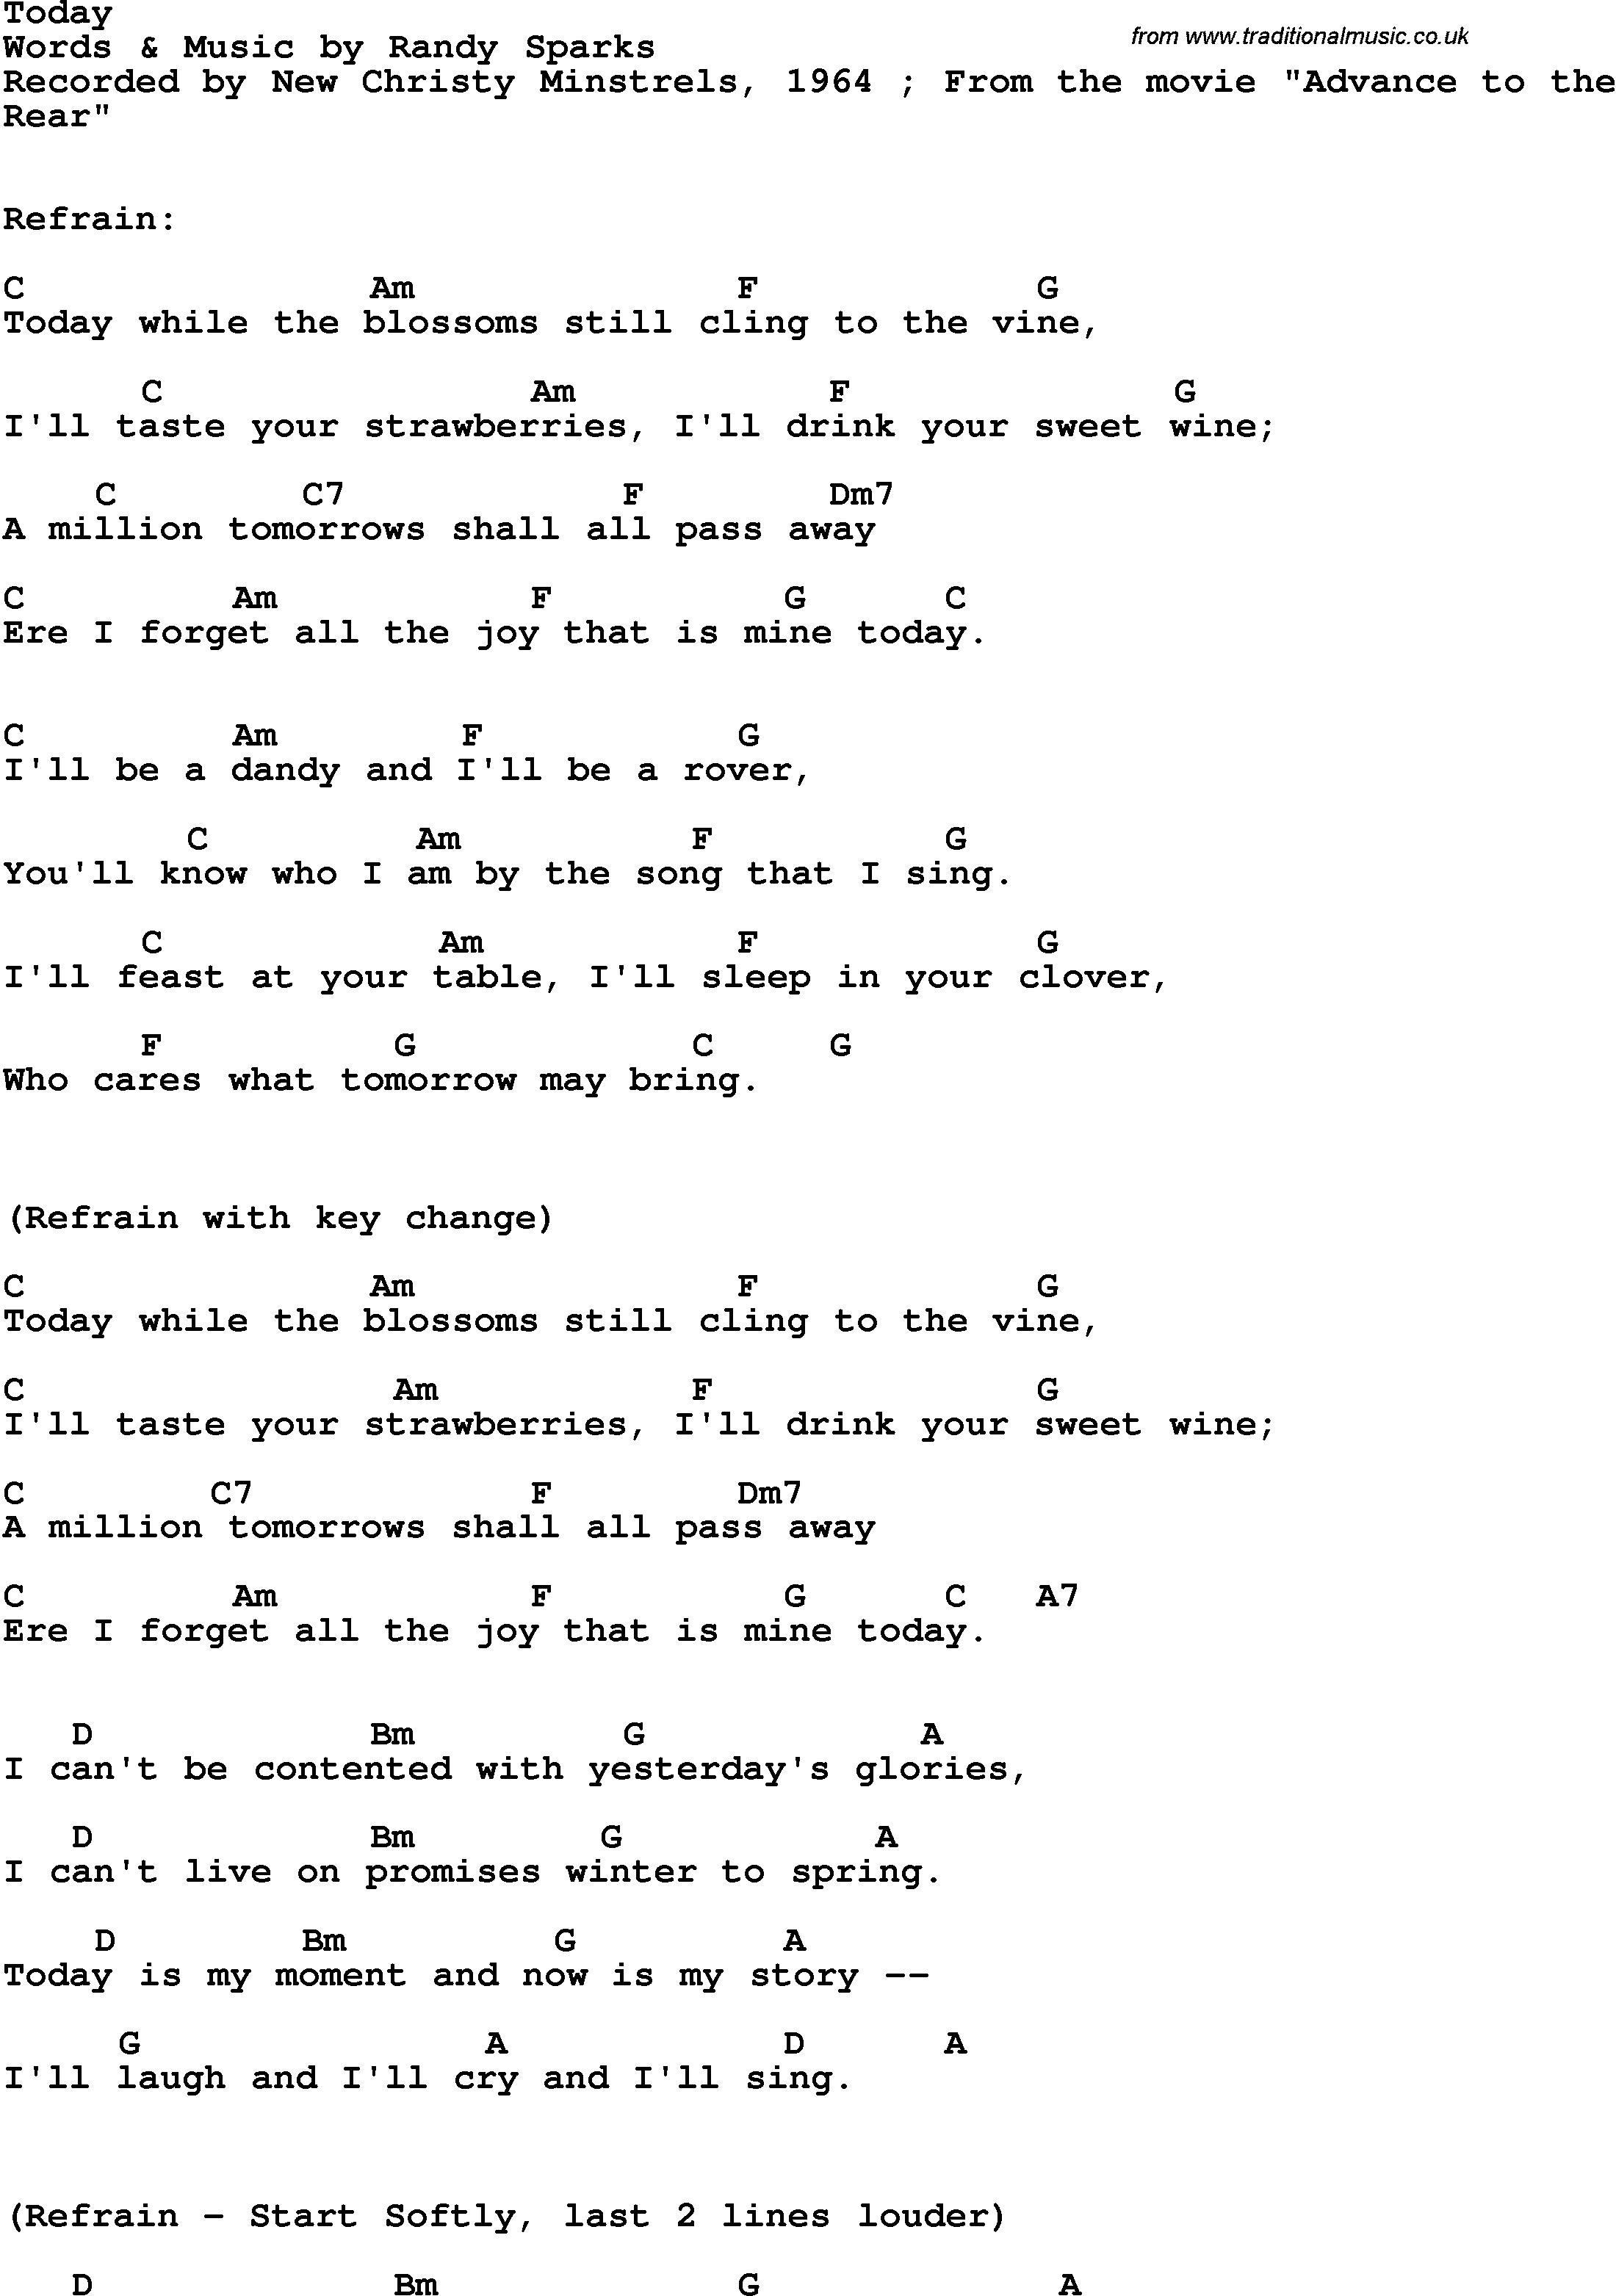 Song Lyrics With Guitar Chords For Today The New Christy Minstrels